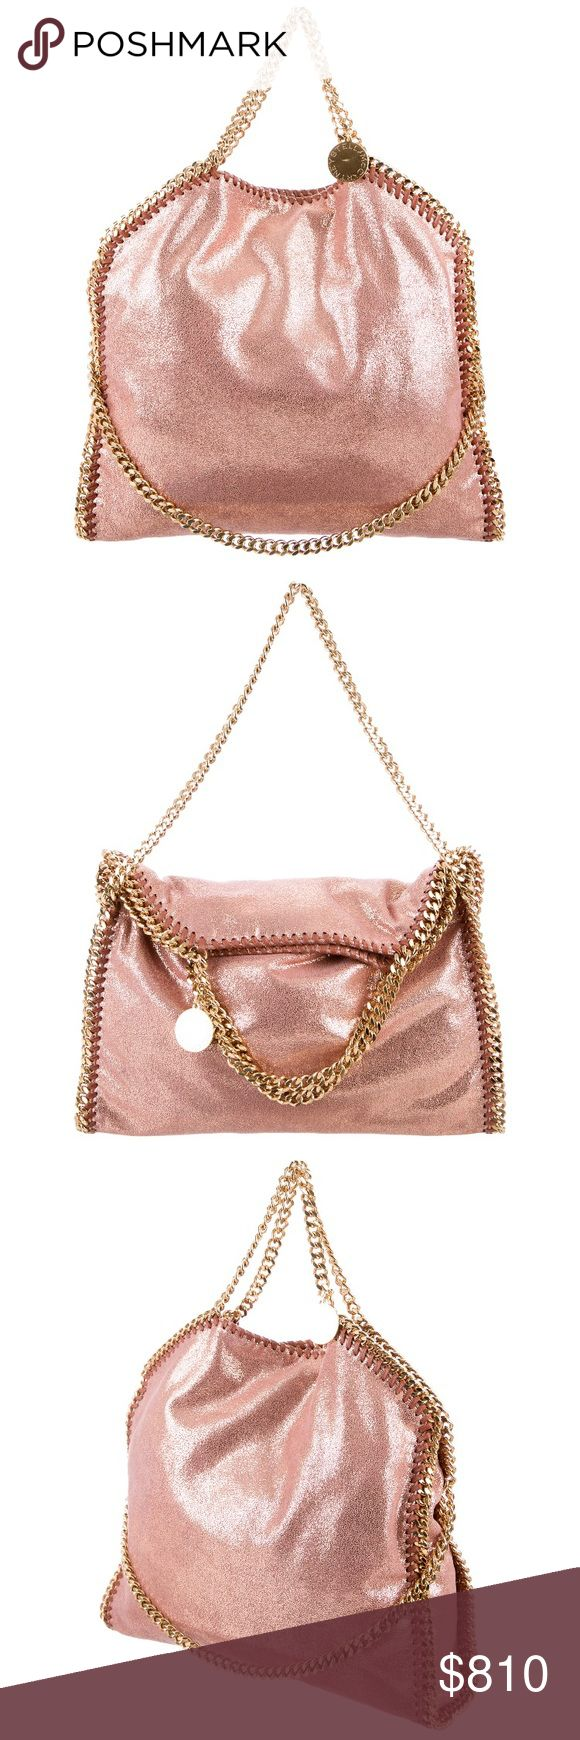 "Stella McCartney Falabella FINAL SALE FIRM PRICE! Comes with the dust bag, shoulder strap 5.5"", height 15"", handle drop 5"", depth 4"", width 14"". Minor signs of wear. Copper pink color Stella McCartney Bags"